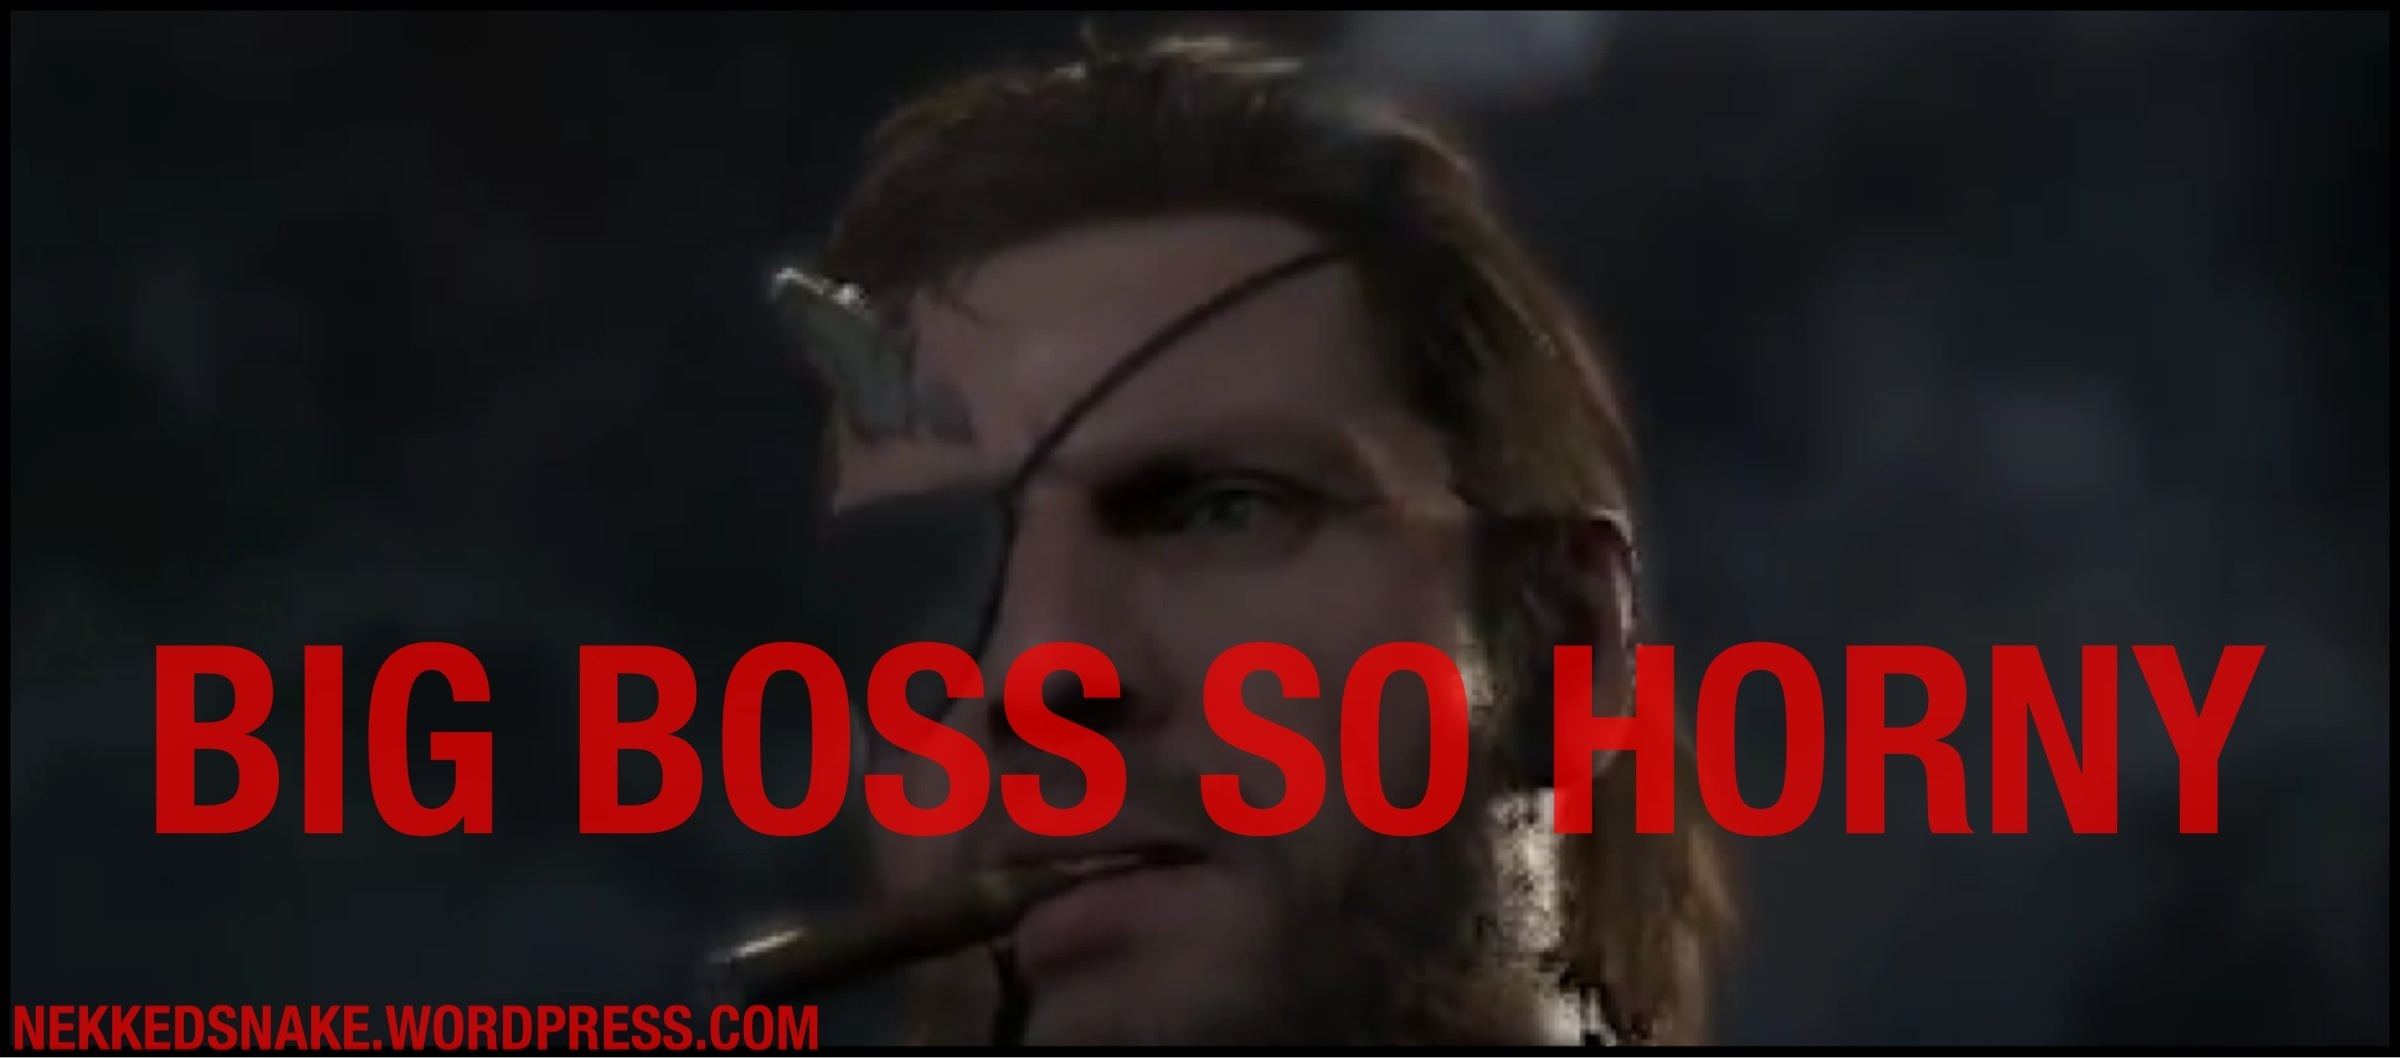 Was Mgsv Hideo Kojima S Ogre Devil Project All This Time